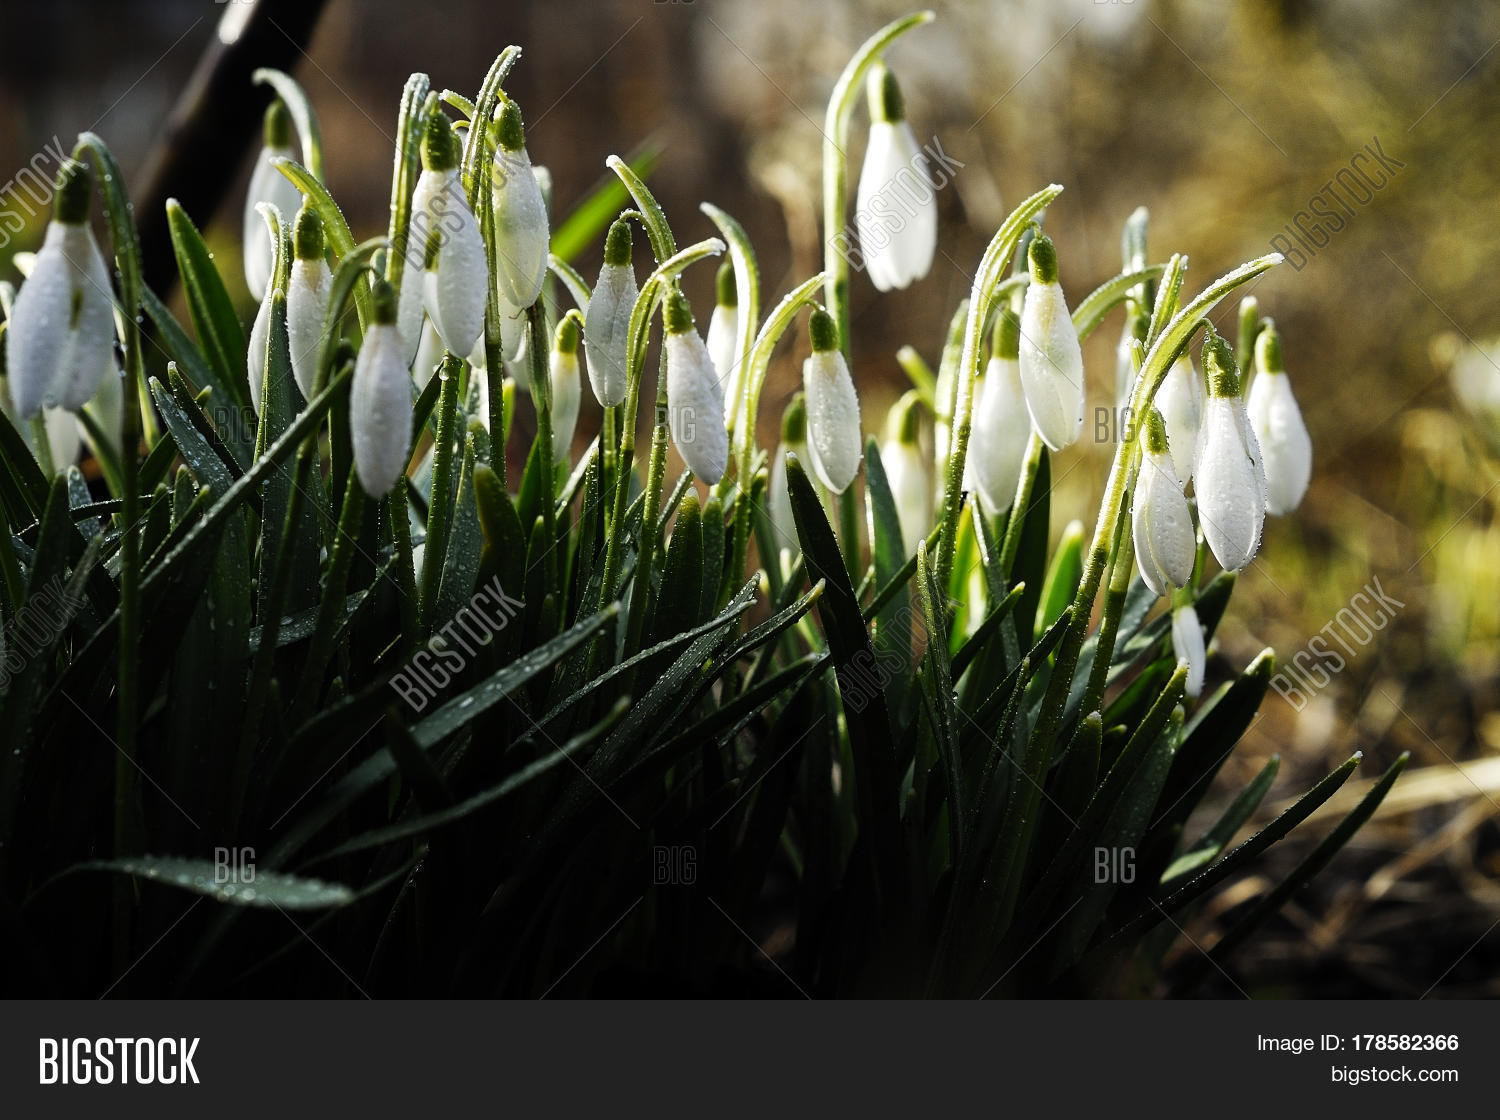 Earliest Spring Image Photo Free Trial Bigstock